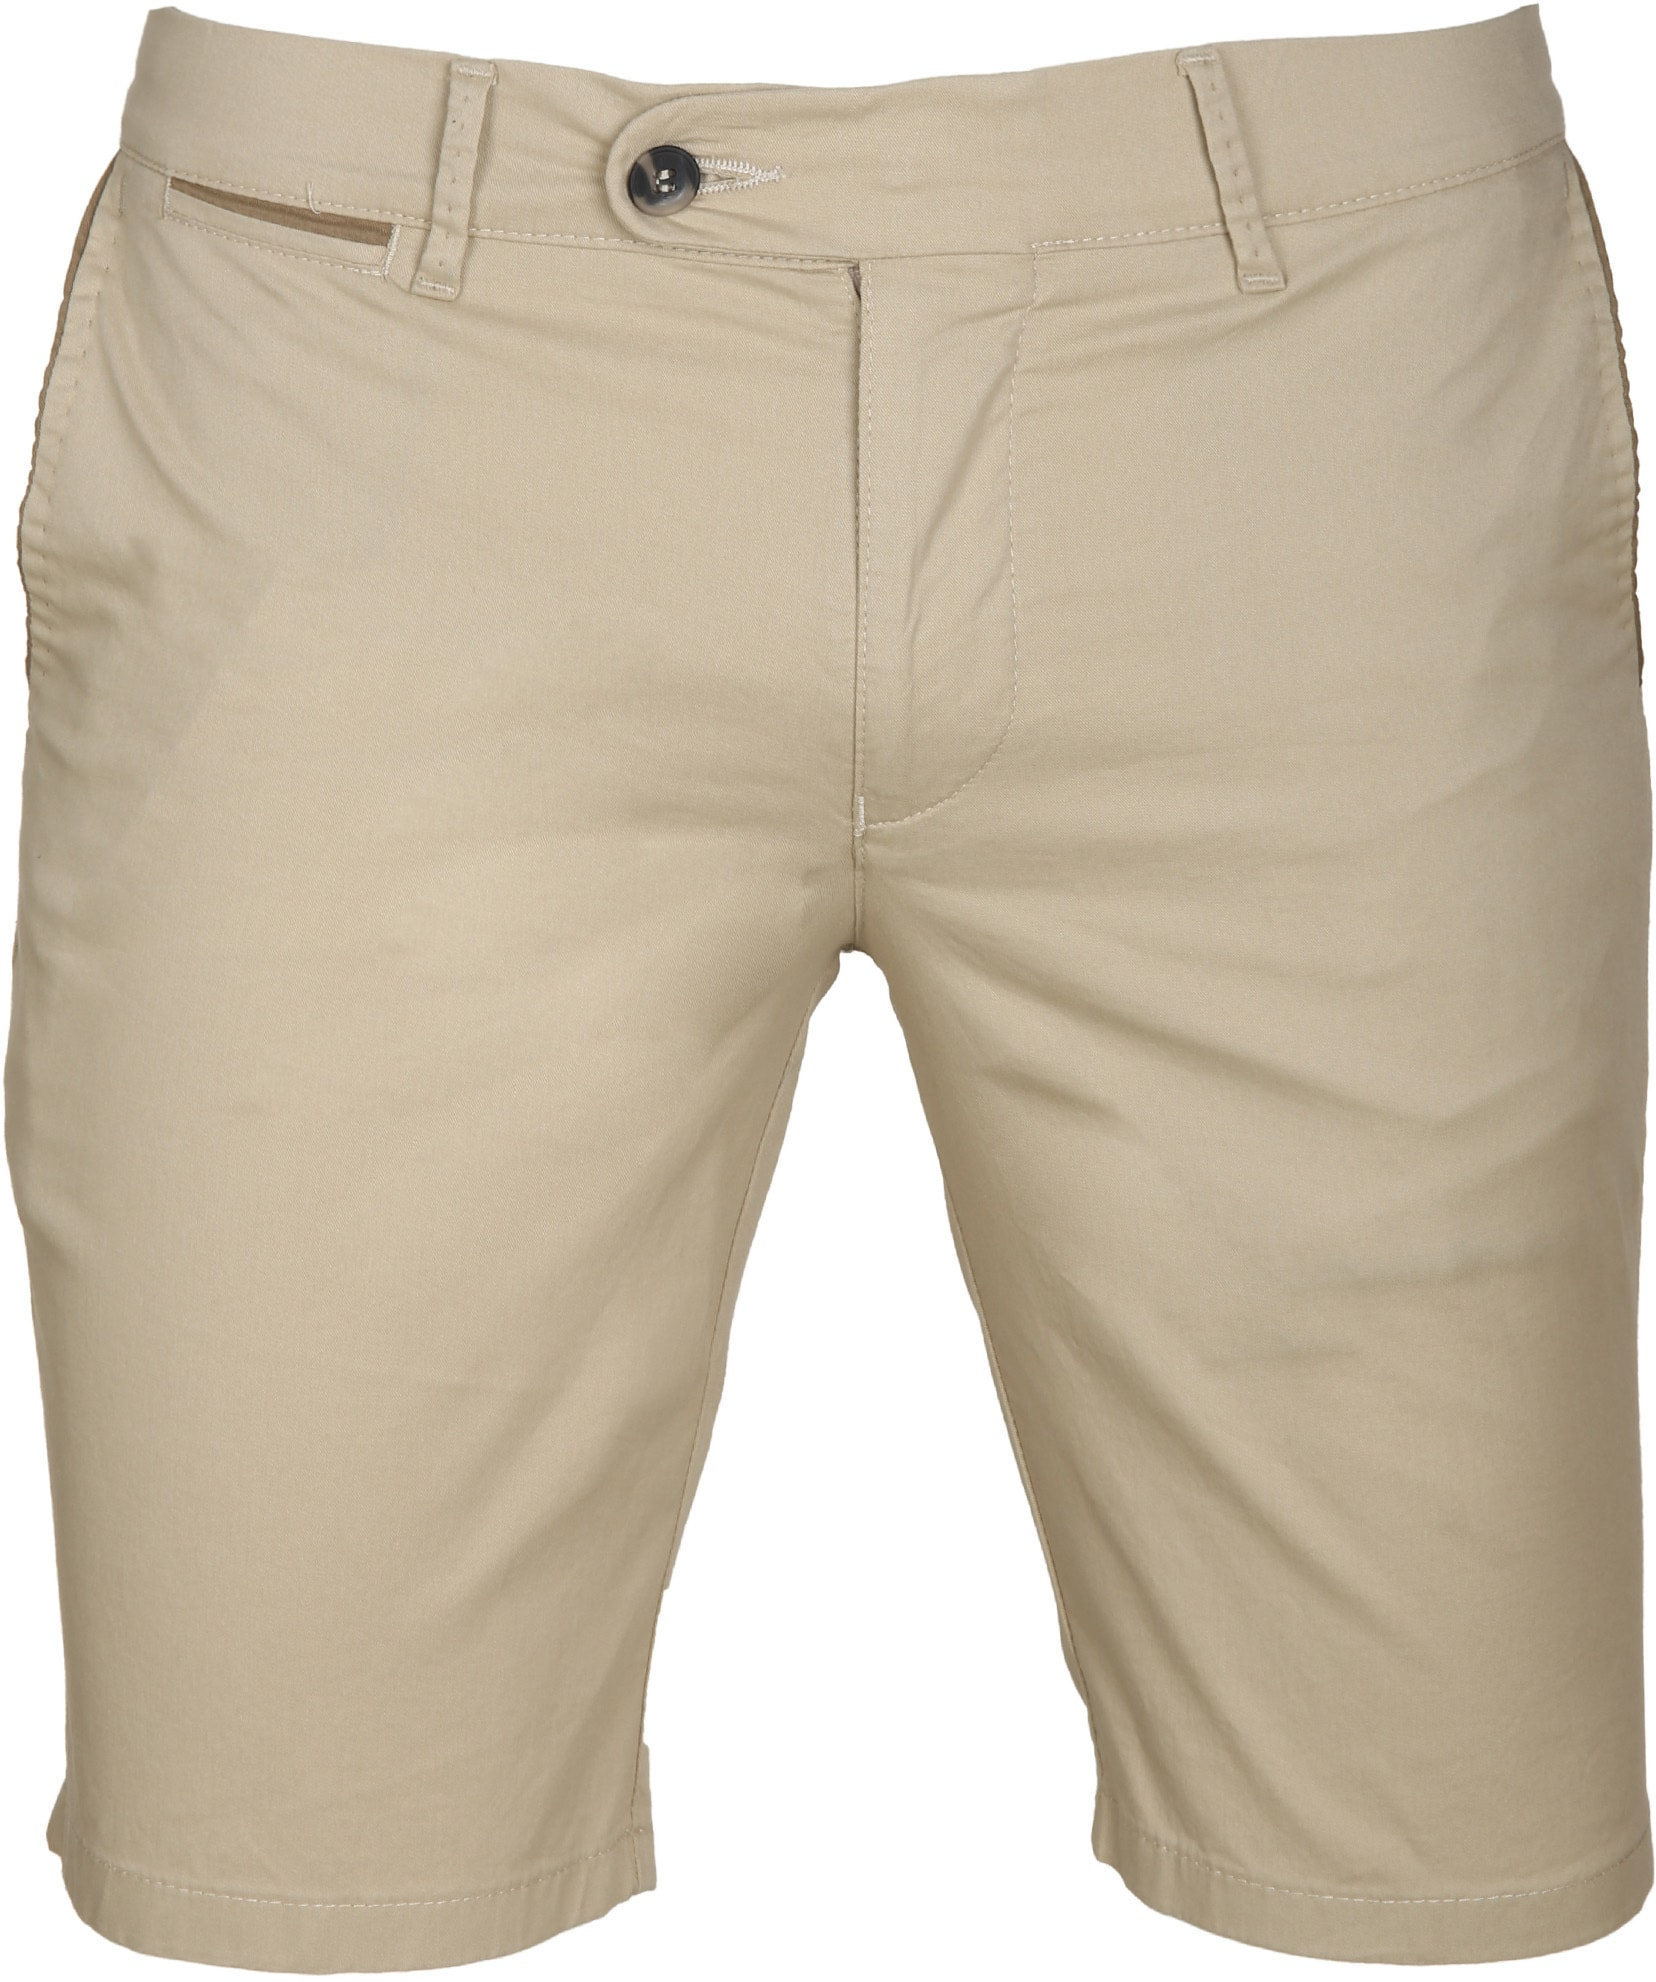 Suitable Chino Short Beige foto 0